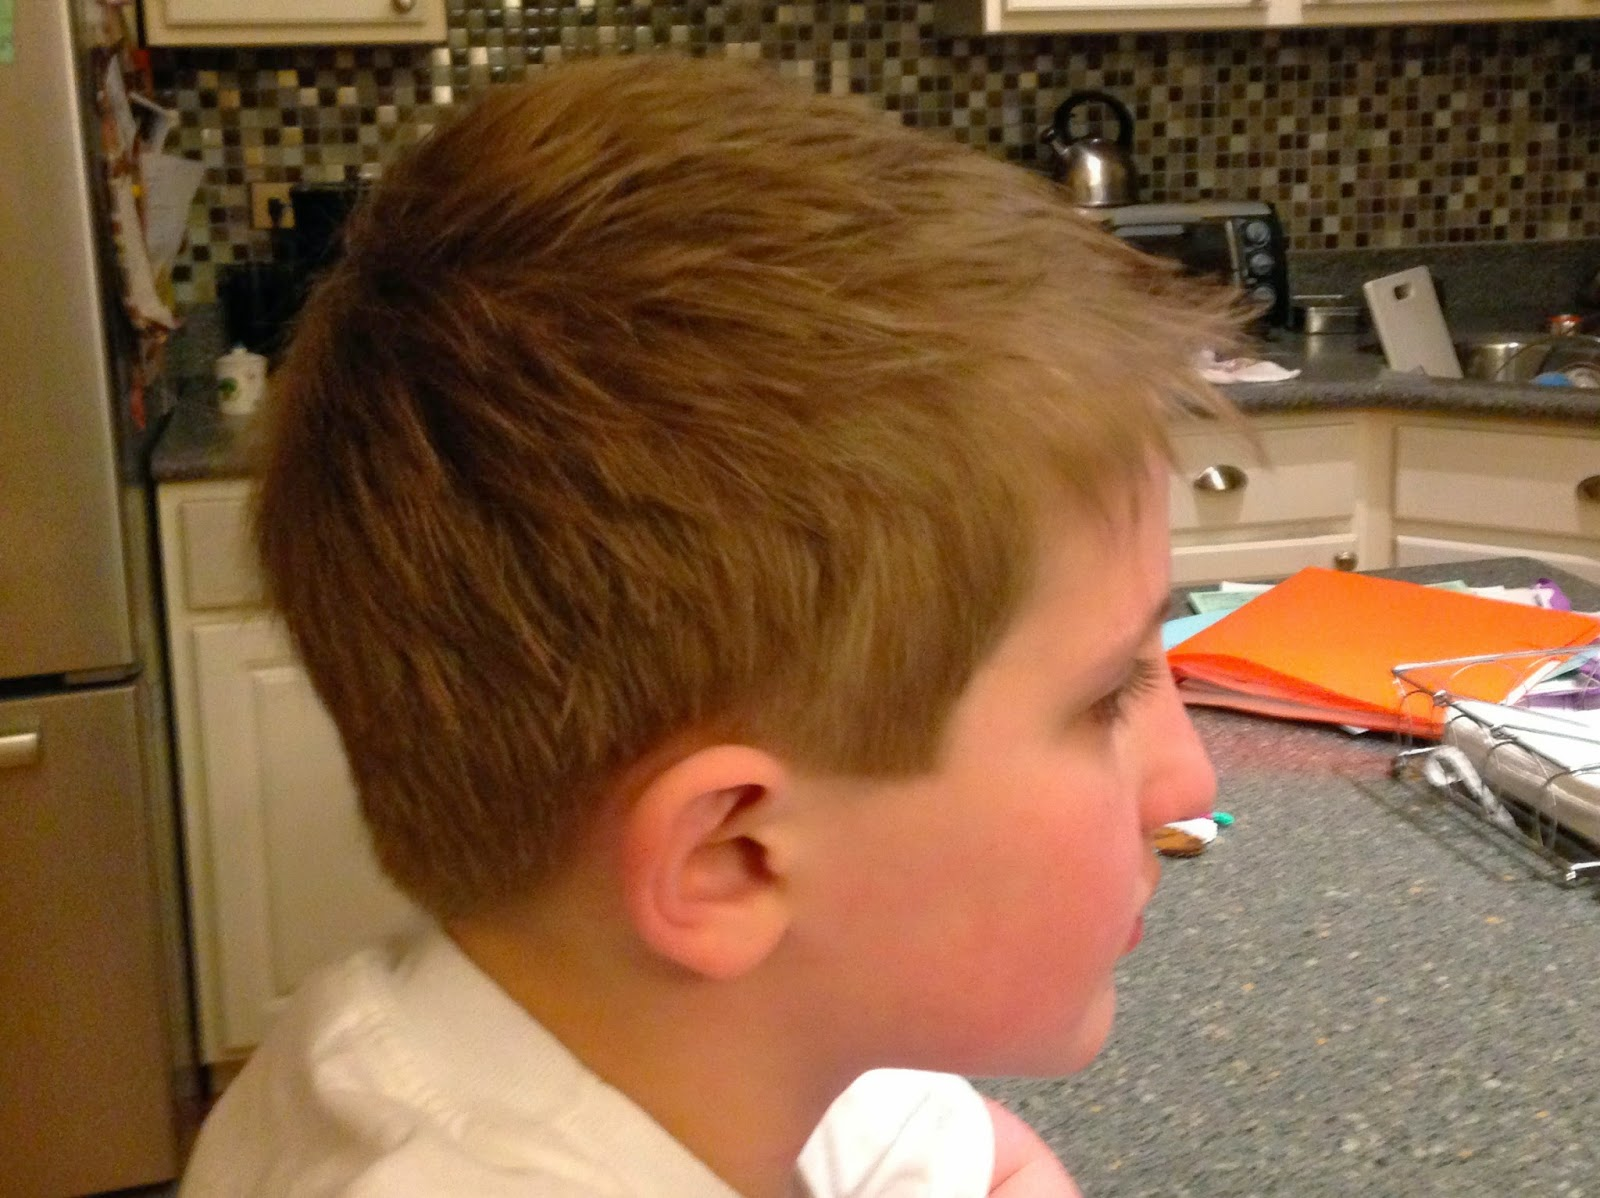 Hairstylist How-to: How to do a Boy's Haircut, Scissor ...